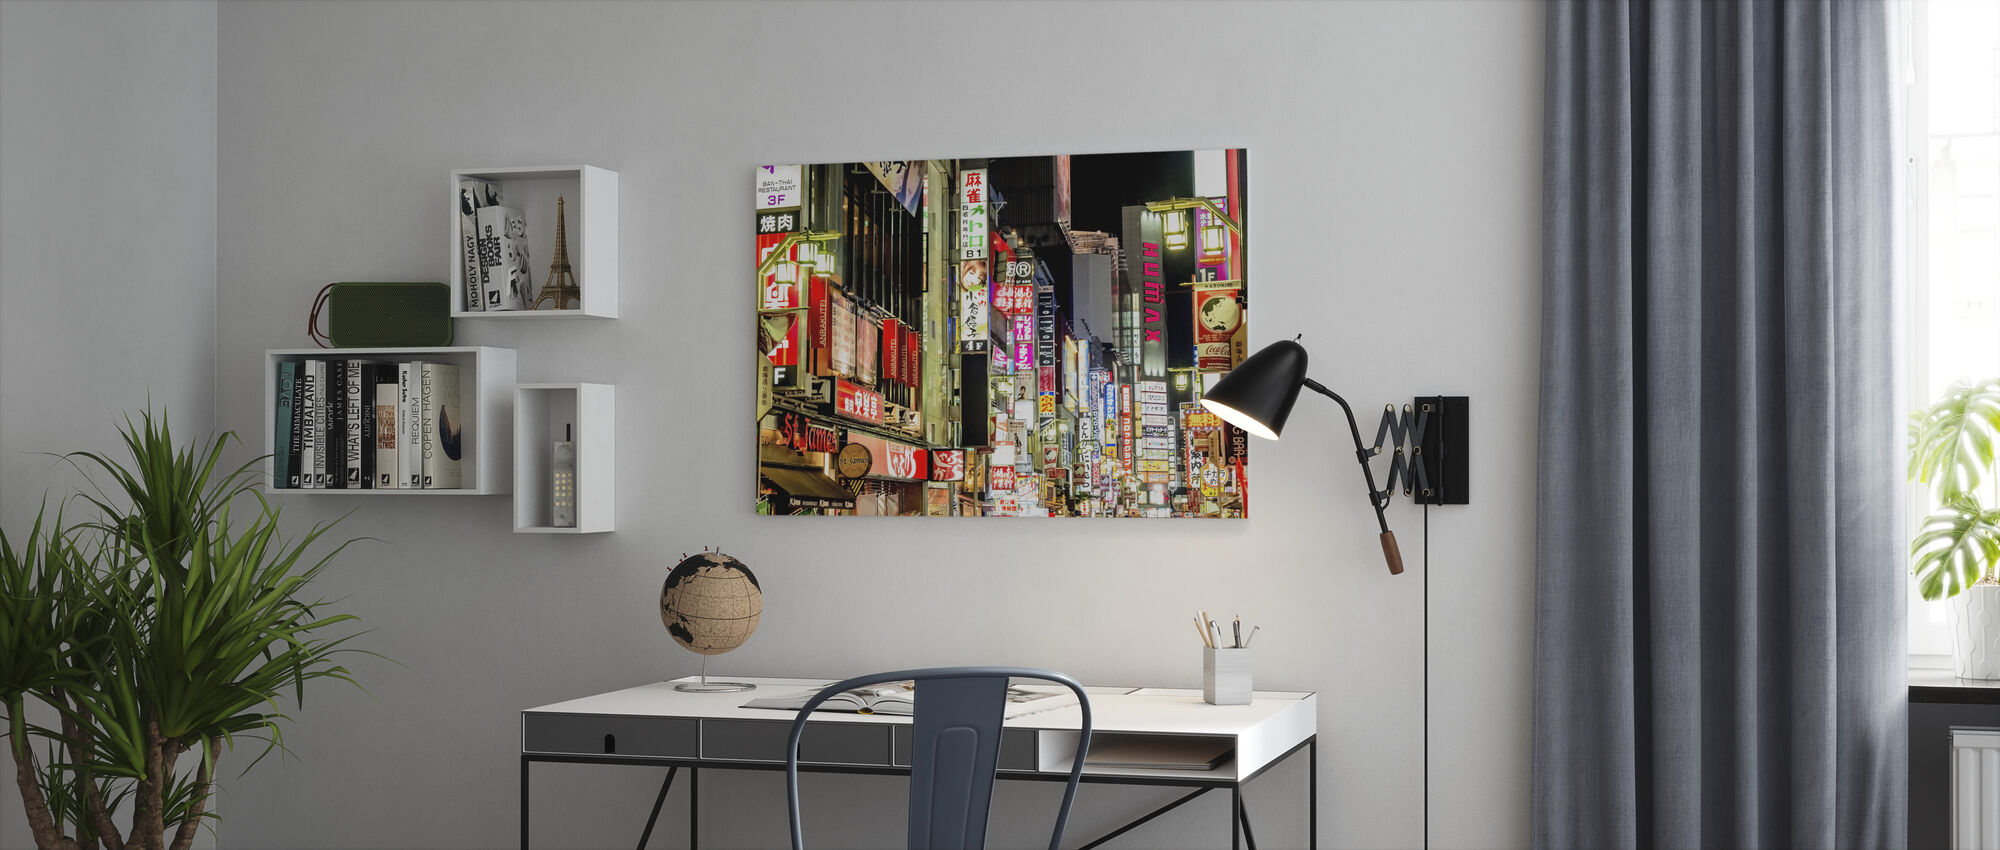 Nachtstraat in Tokio - Canvas print - Kantoor